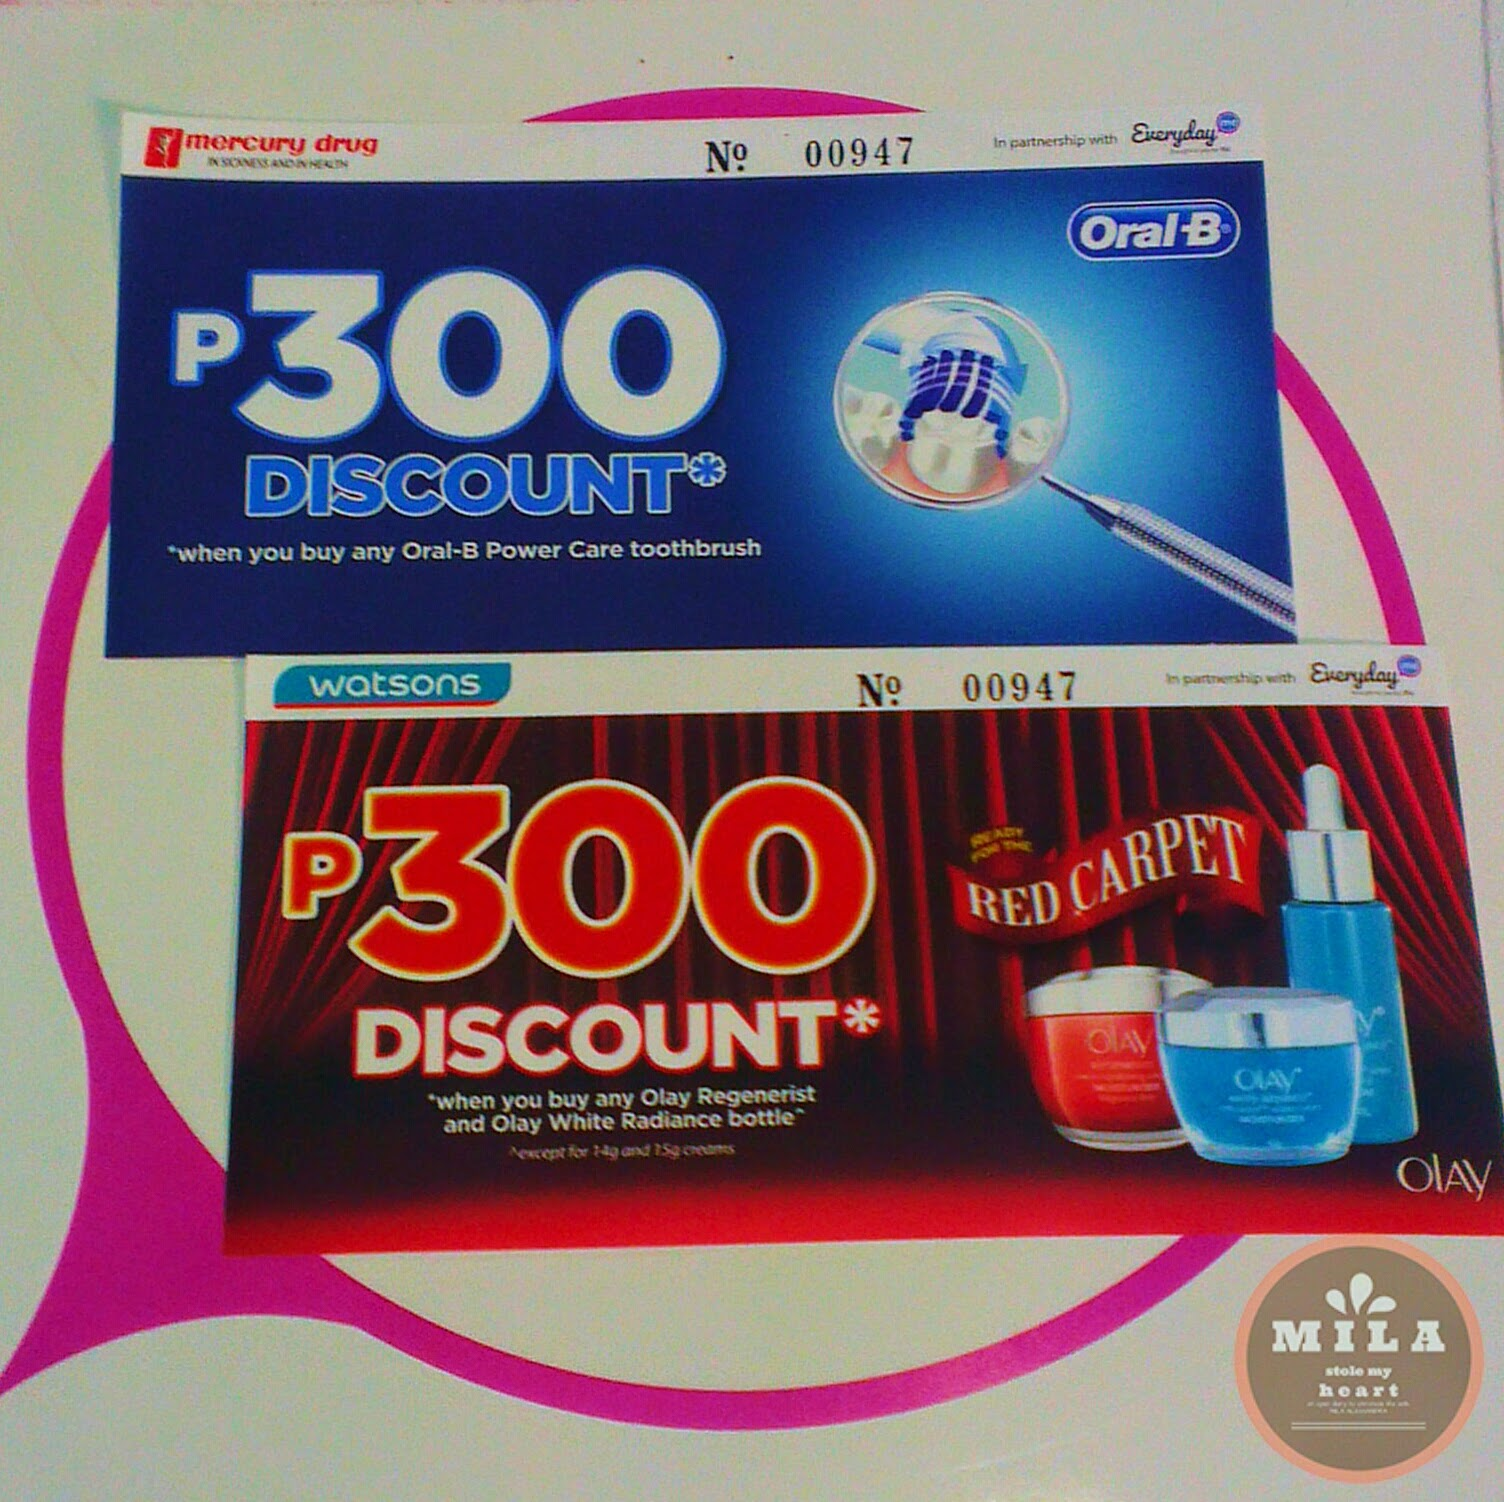 Oral B and Olay Discount Vouchers